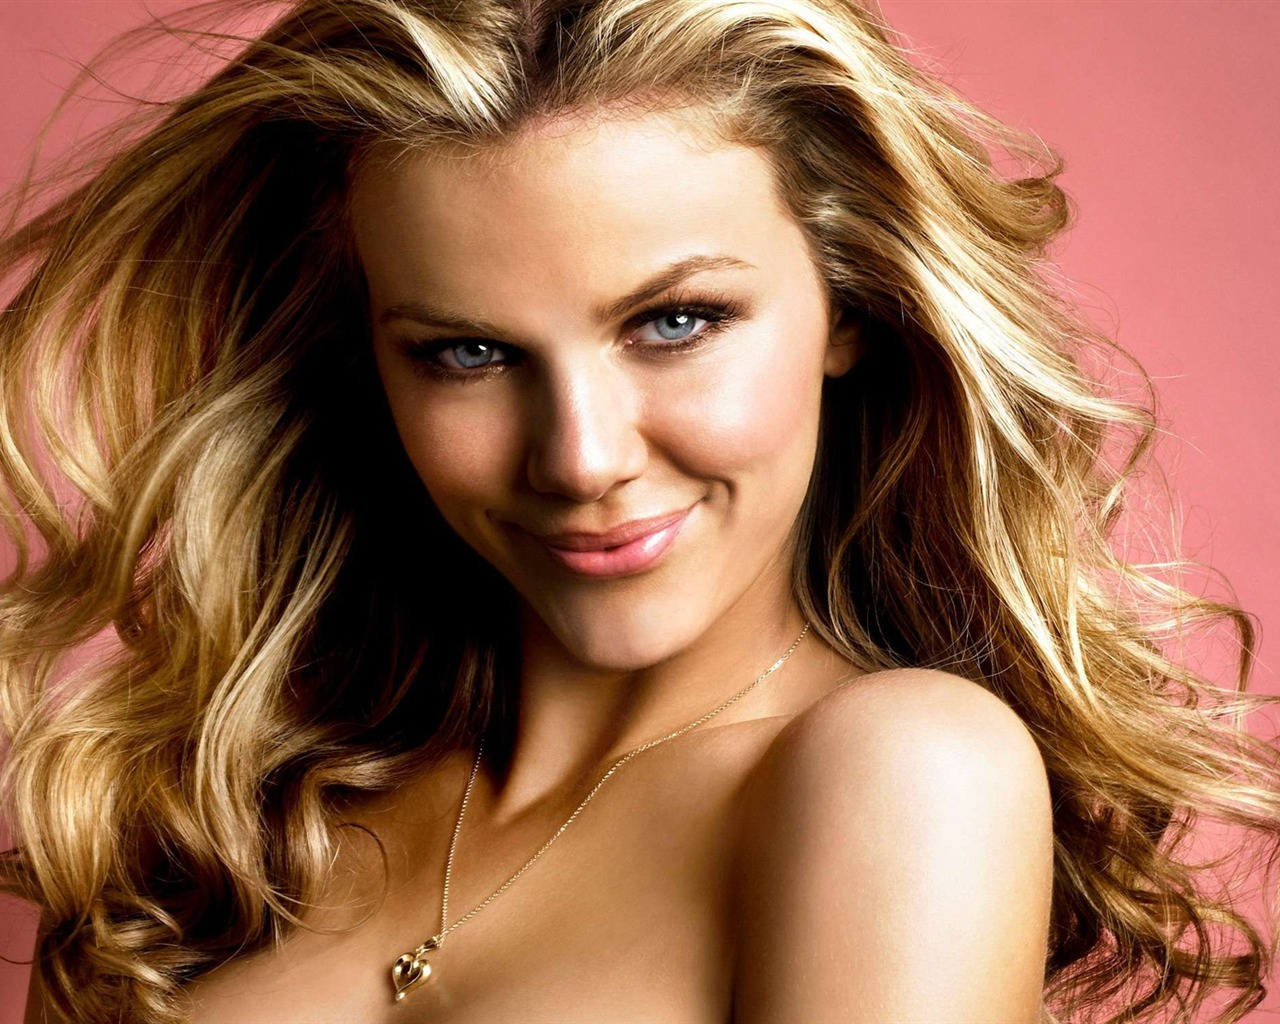 Brooklyn Decker #007 - 1280x1024 Wallpapers Pictures Photos Images